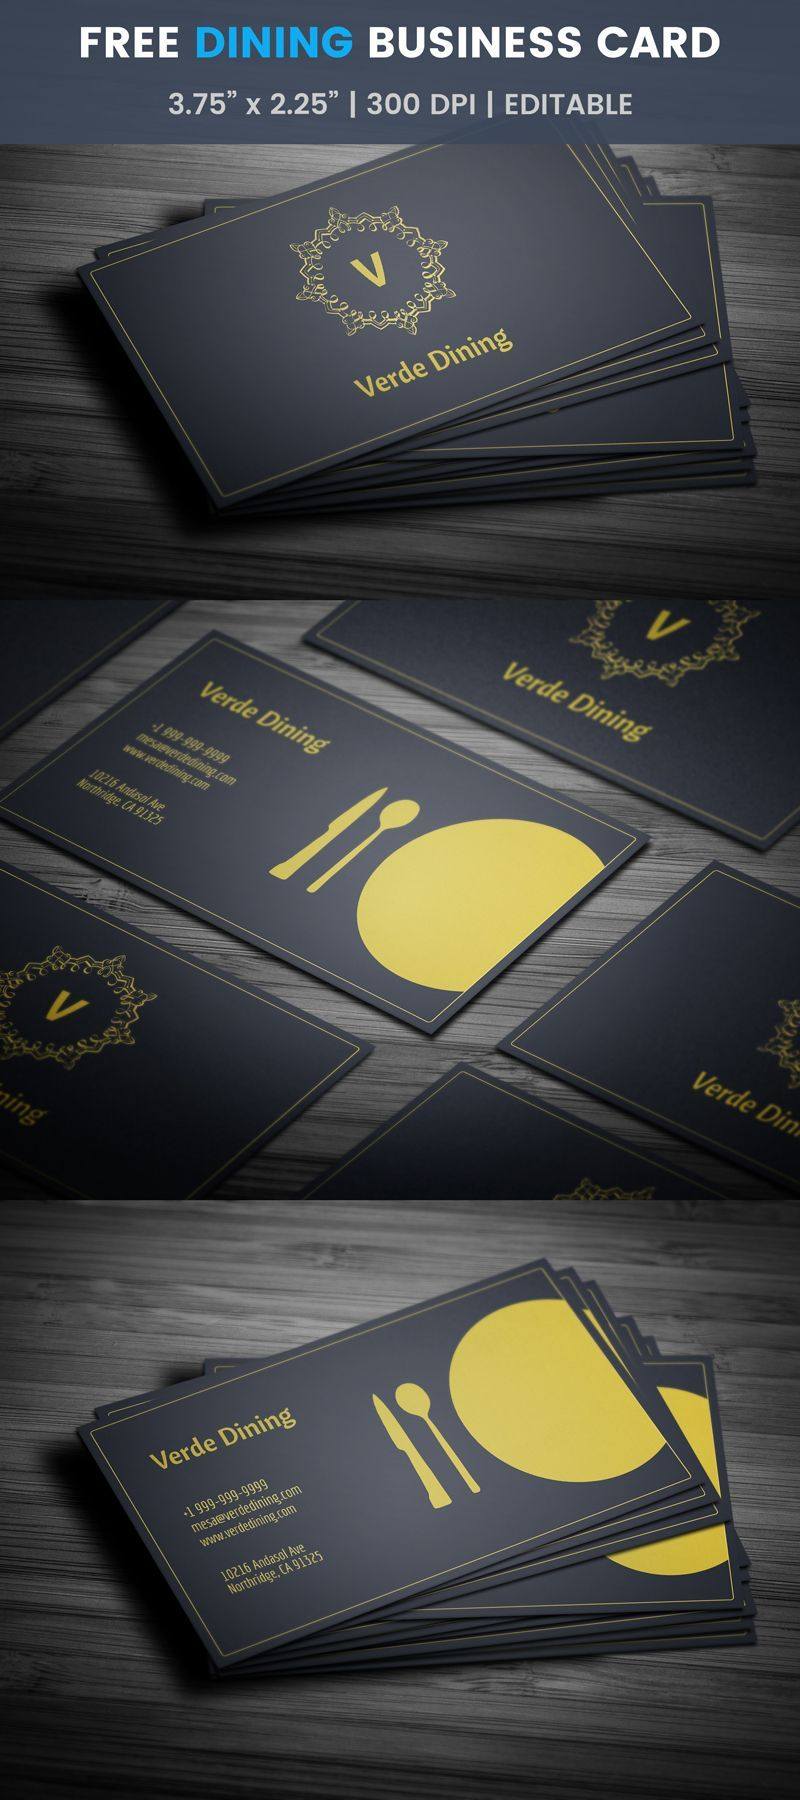 Free Artistic Restaurant Business Card Template Food Design